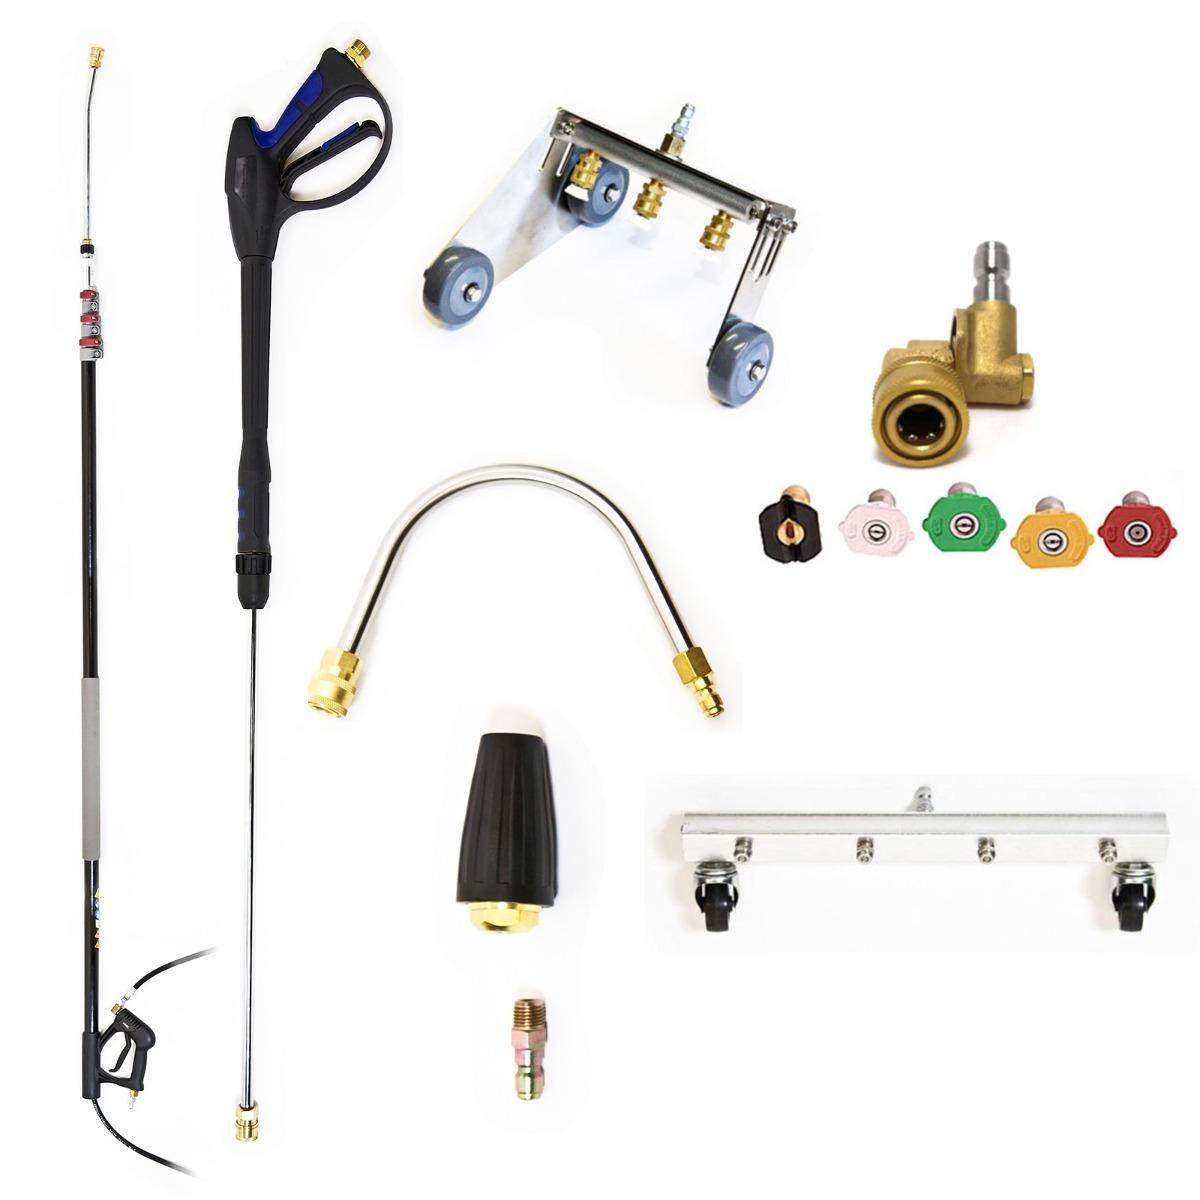 Silver Pressure Washer Accessory Pack